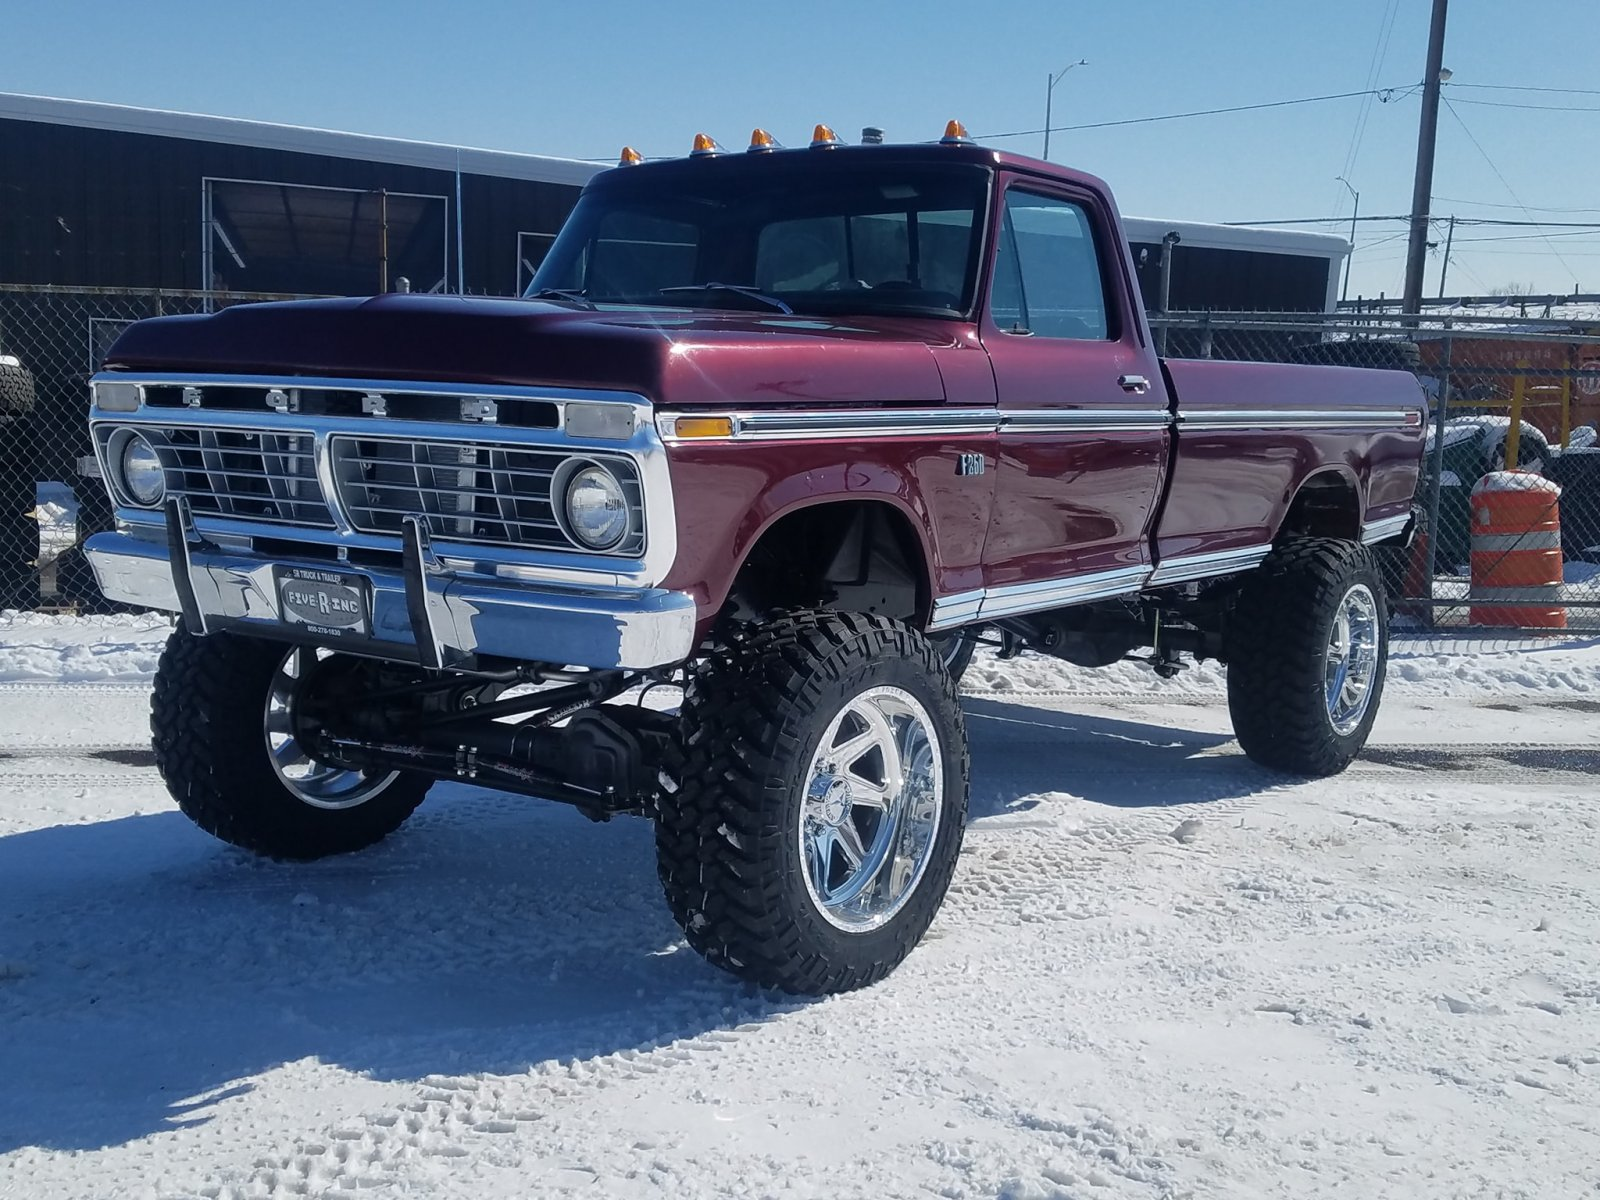 STOLEN! Gorgeous Ford Truck Has Been Stolen Out Of Shop In Golden Co 2.jpg